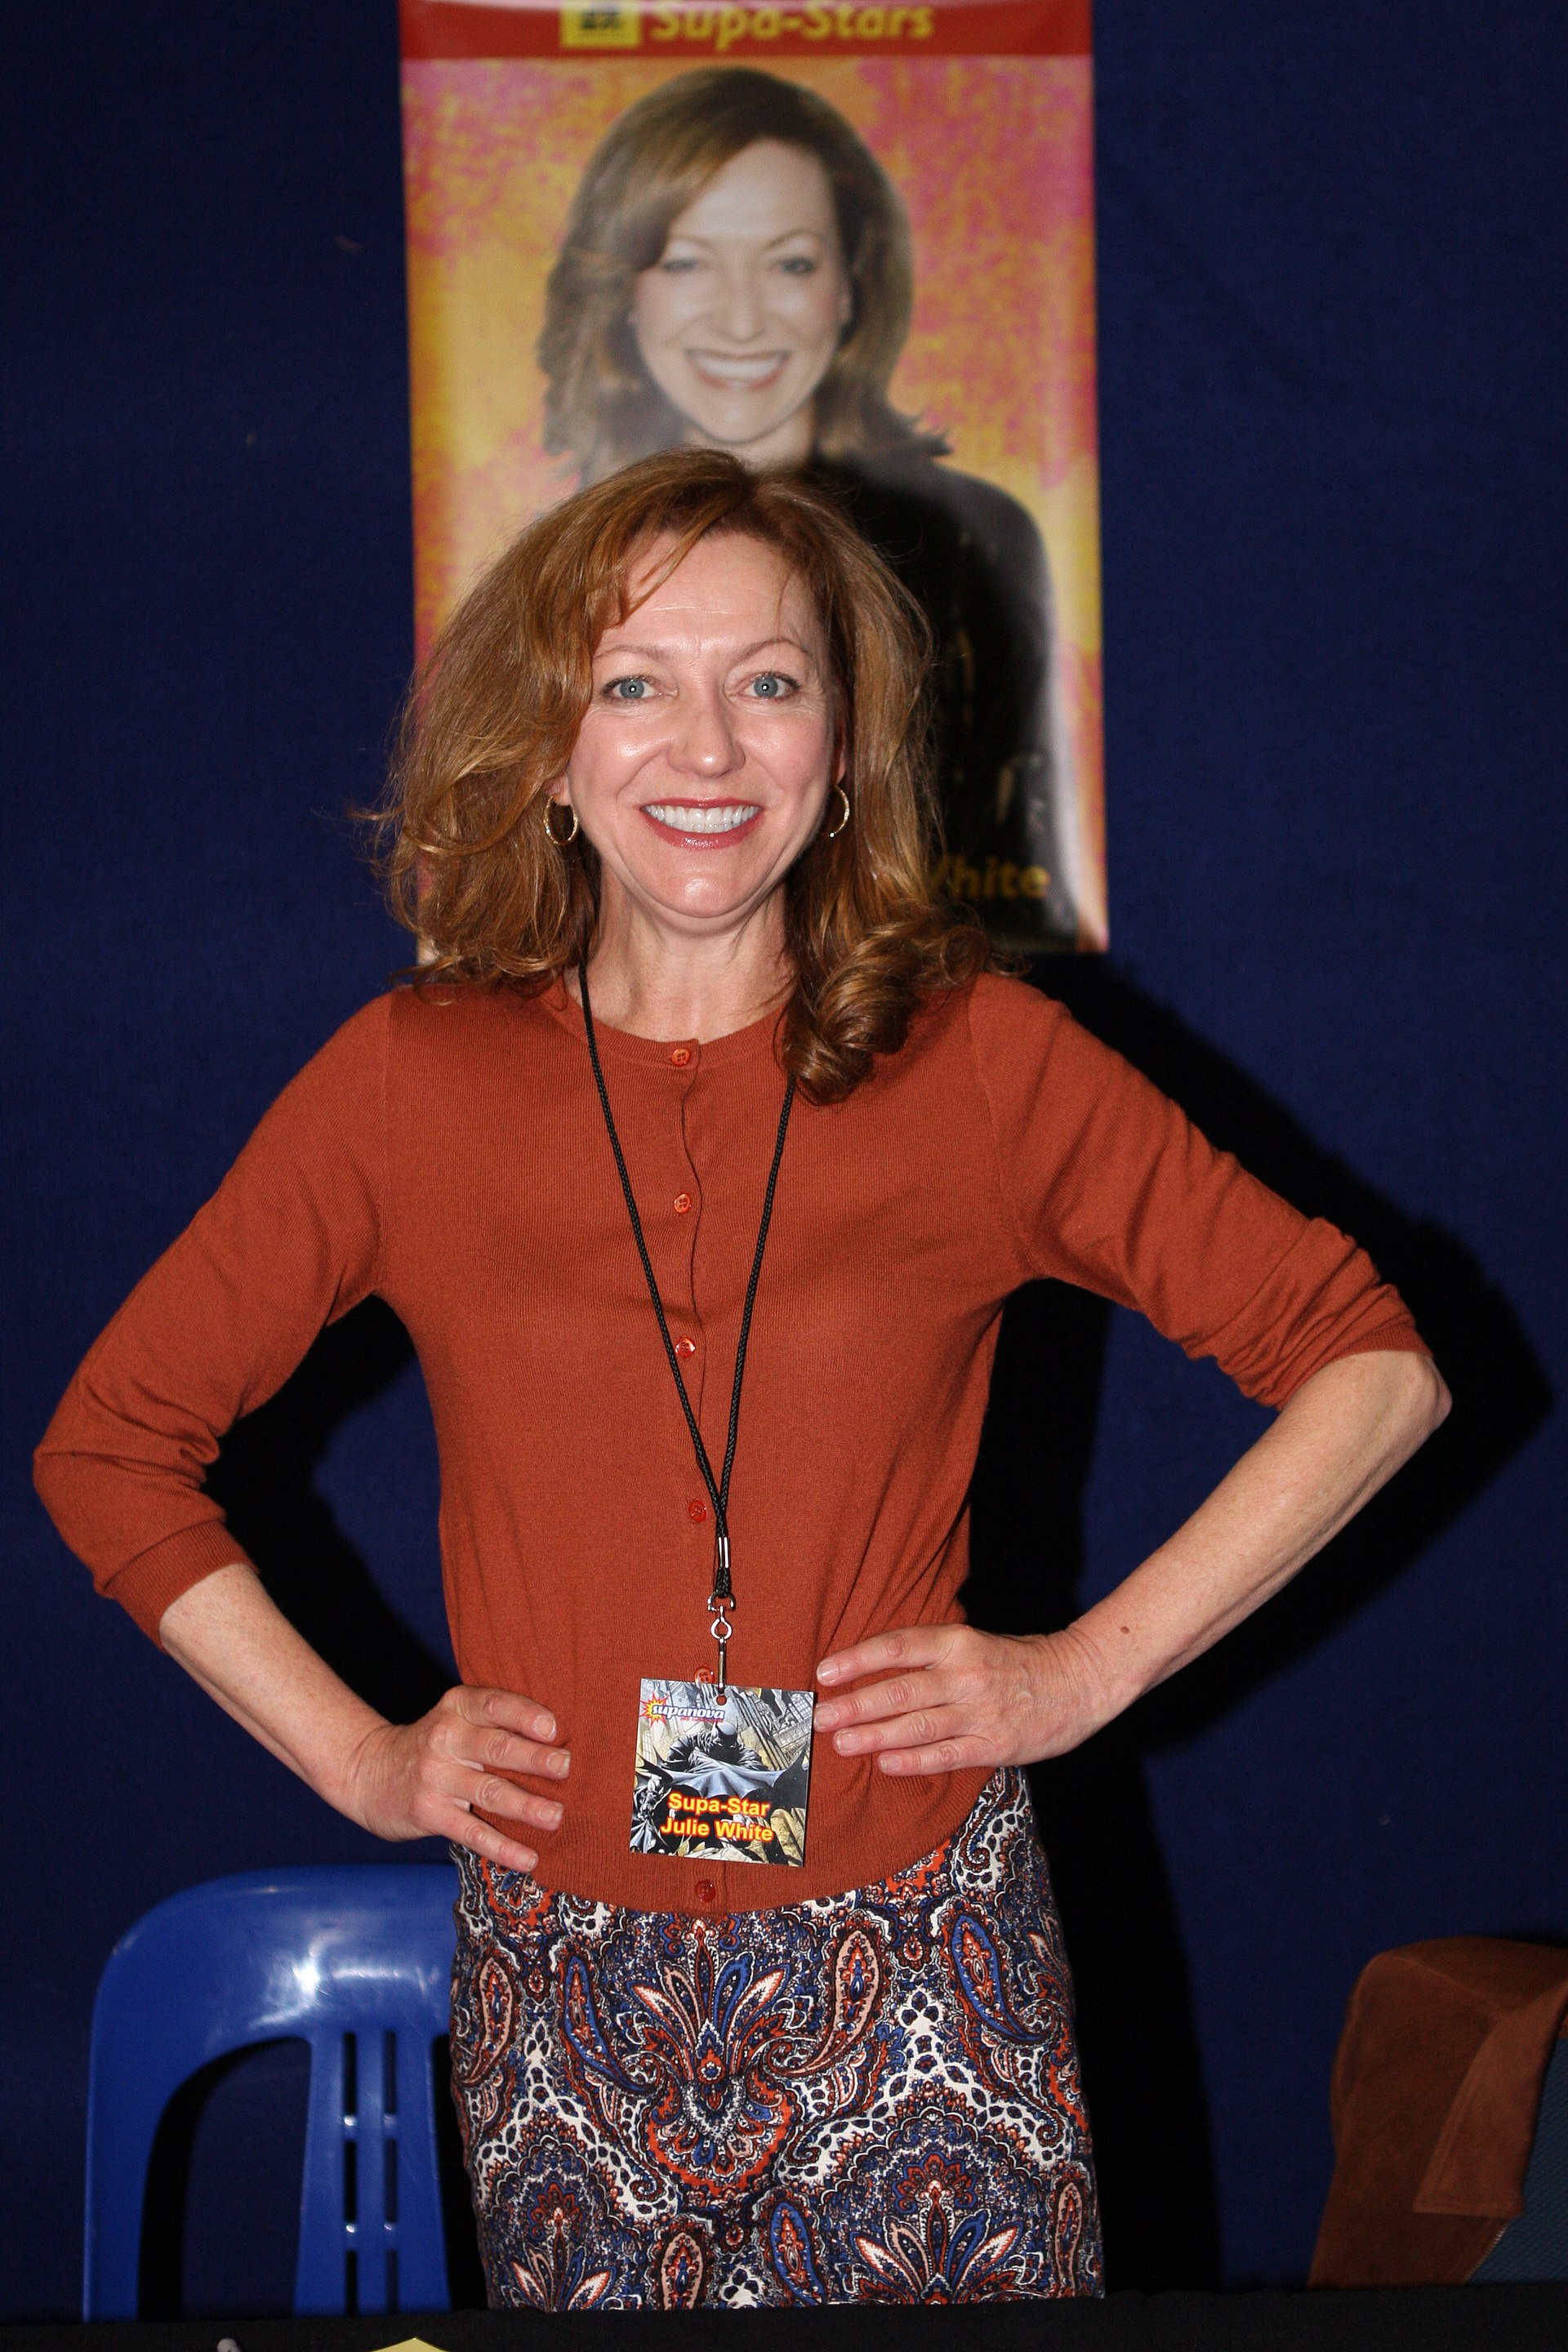 Girly Intimacy Actress Julie White Hot